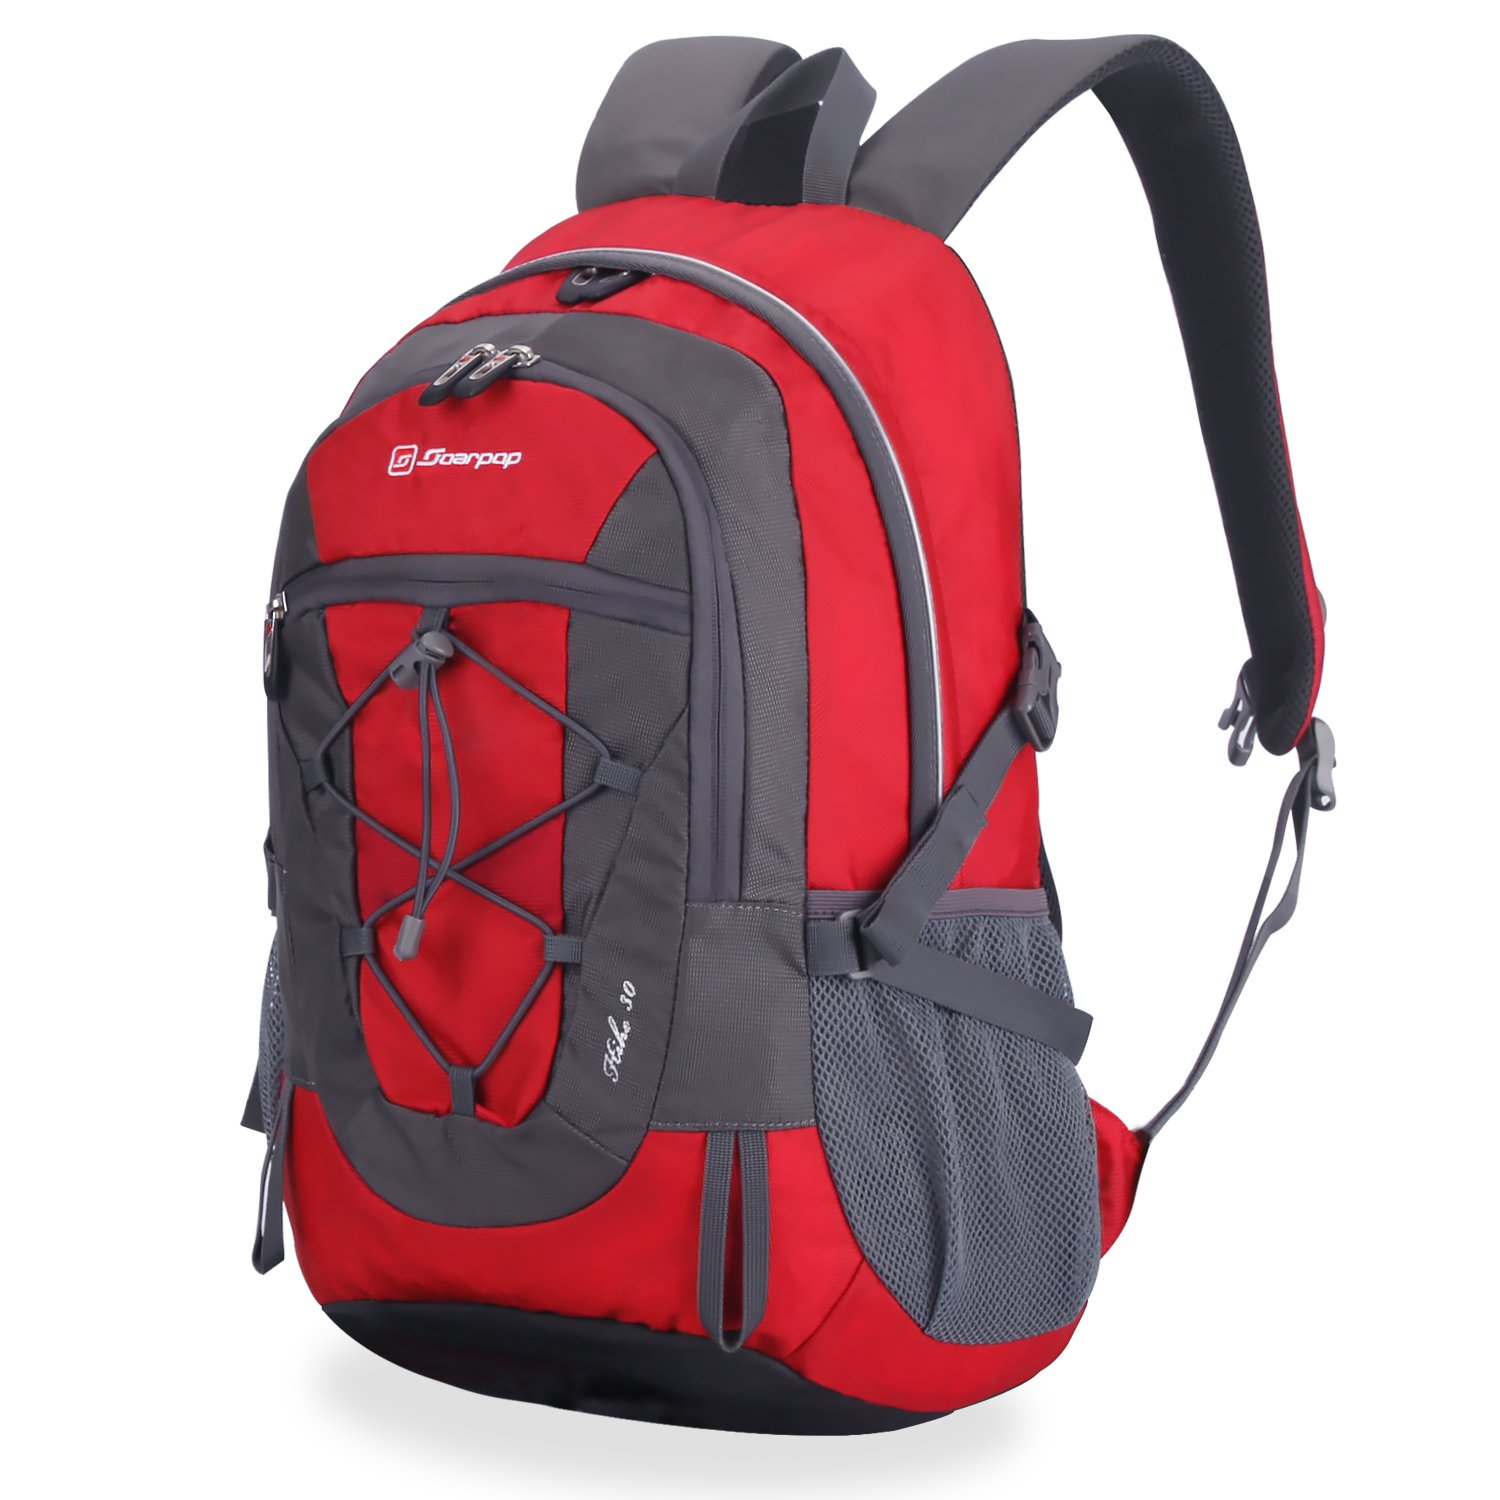 Soarpop Outdoor Sport/School Lightweight Backpack for Camping/Travelling/Climbing/Running/Cycling Daypack BB4332R